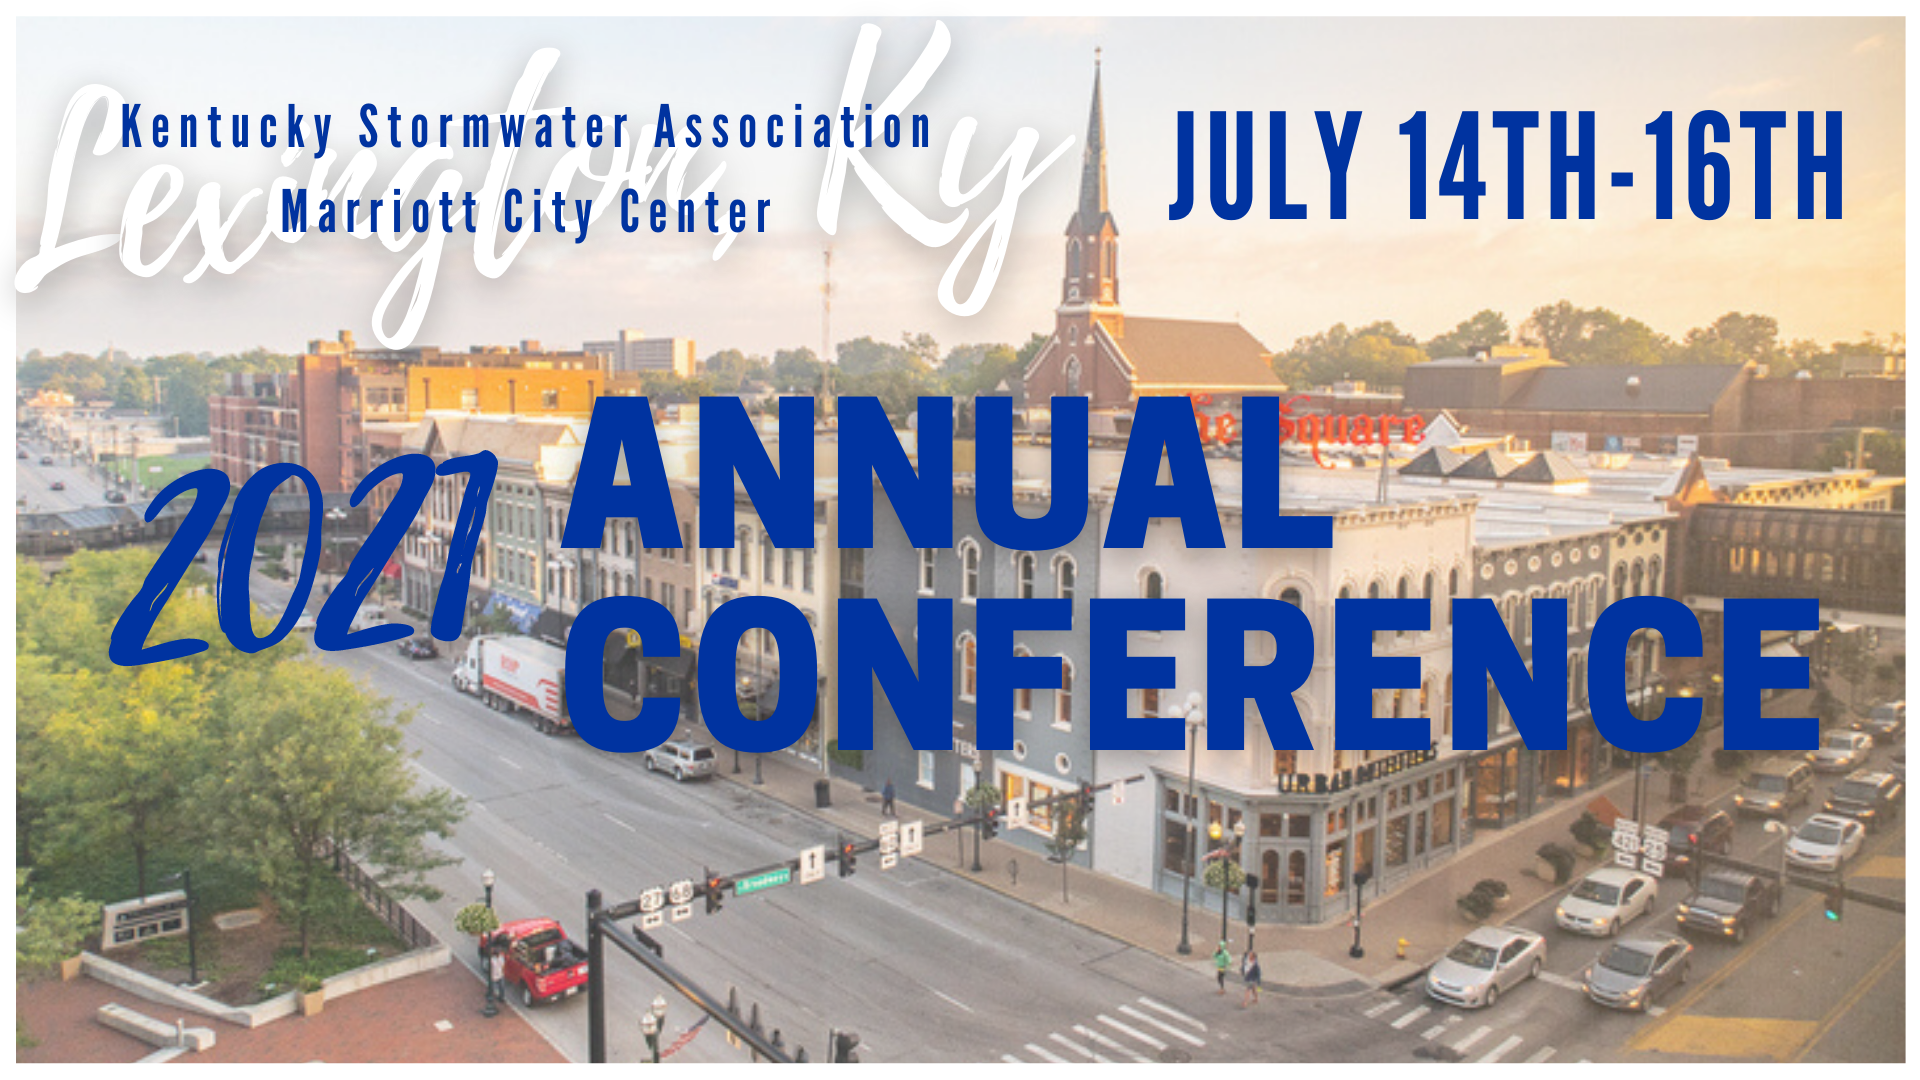 Banner 2021 Annual Conference